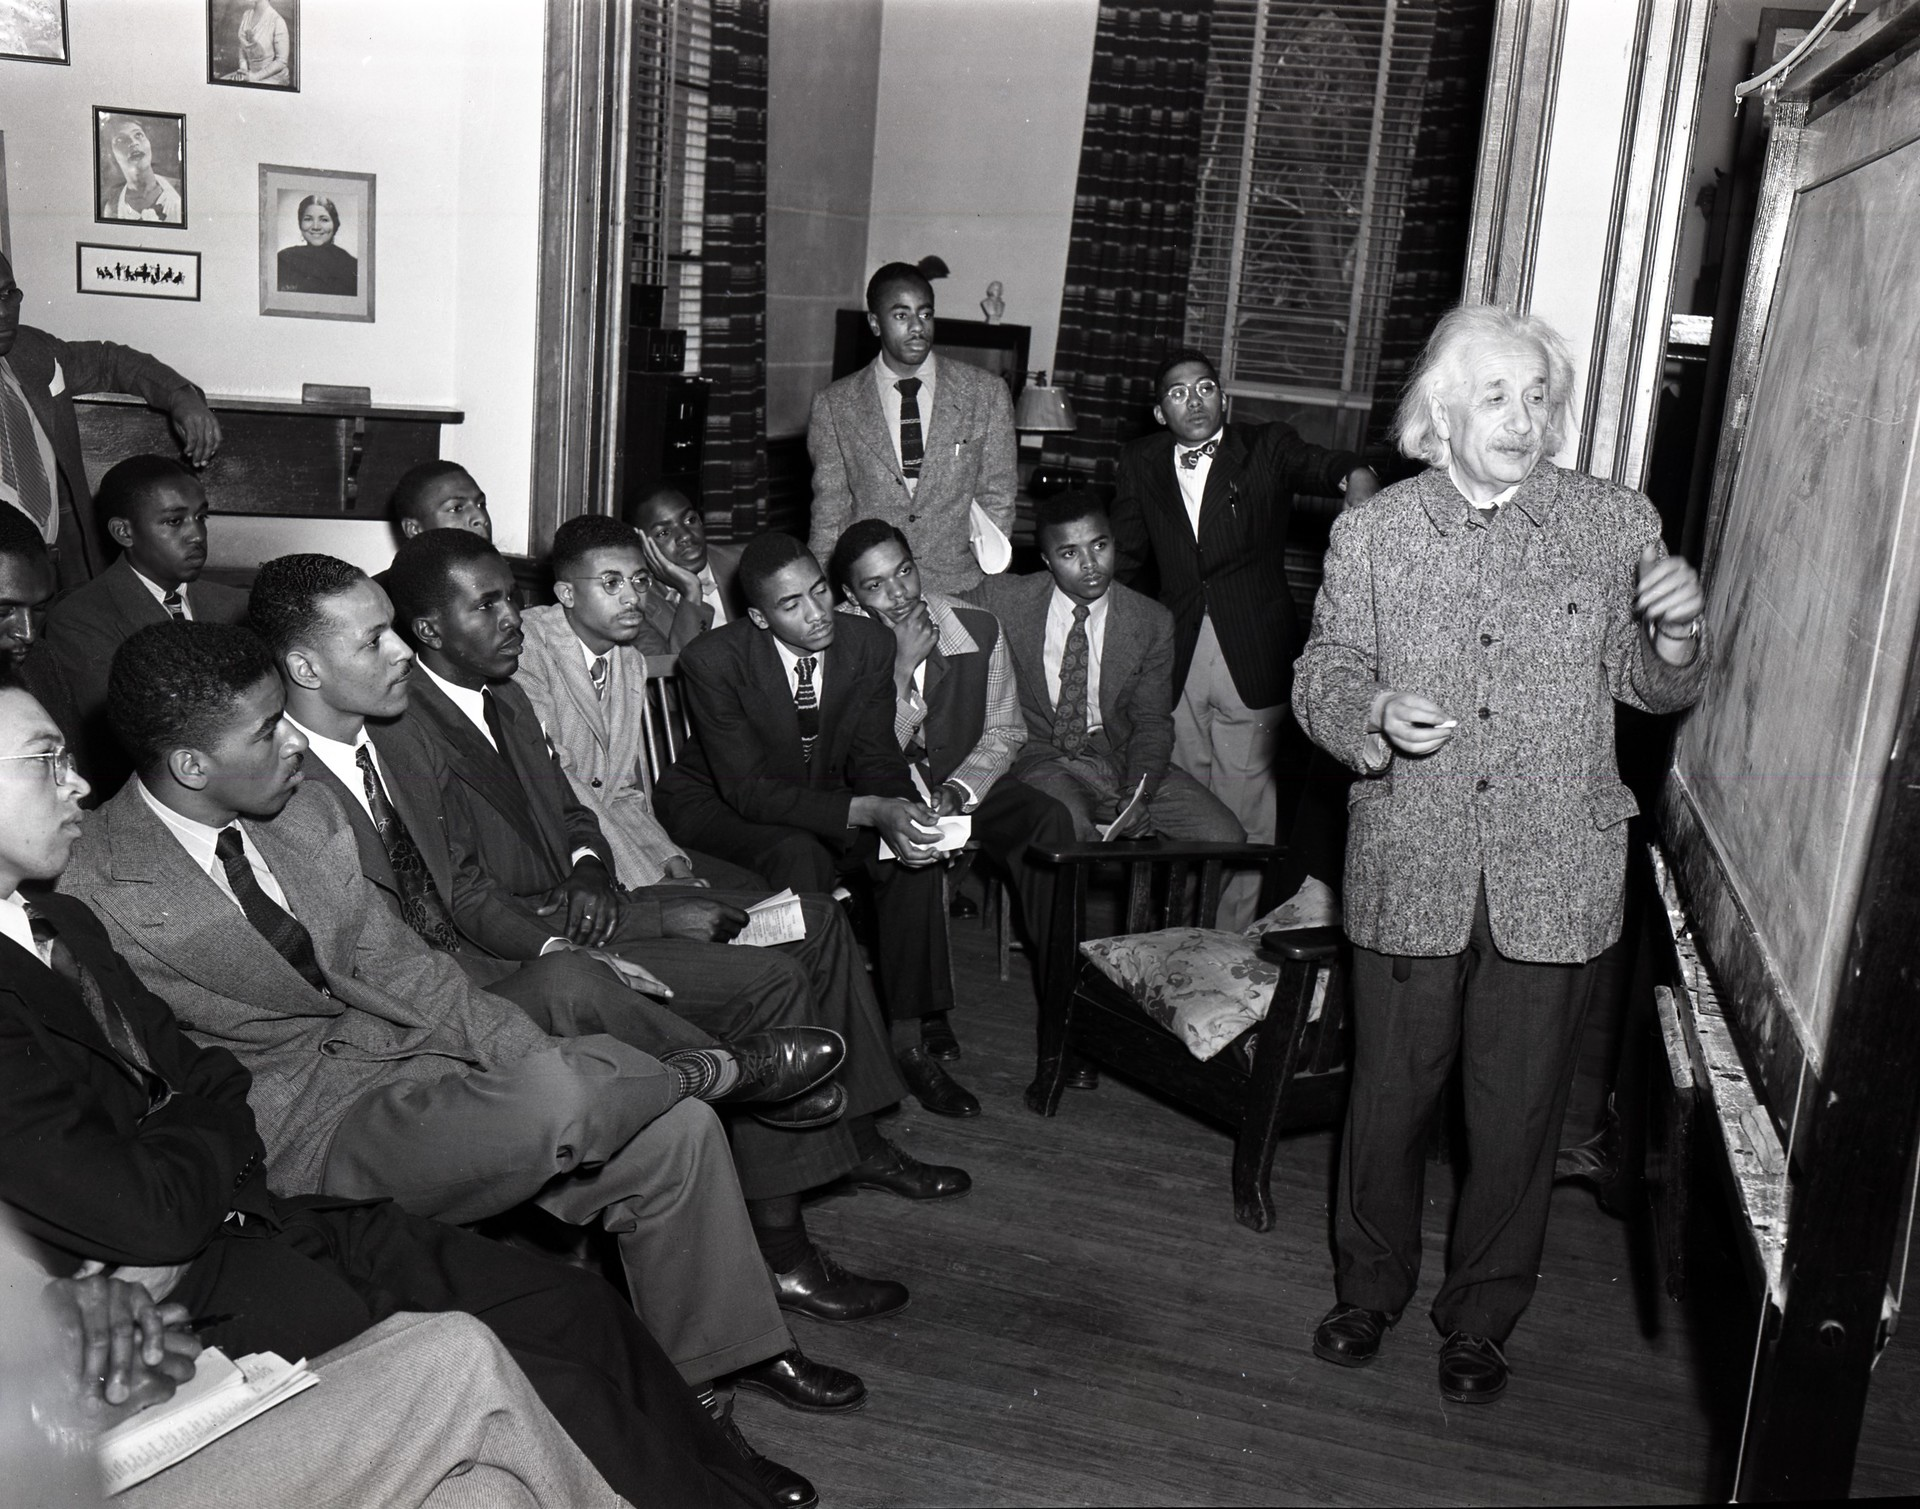 Albert Einstein And Students At Lincoln University